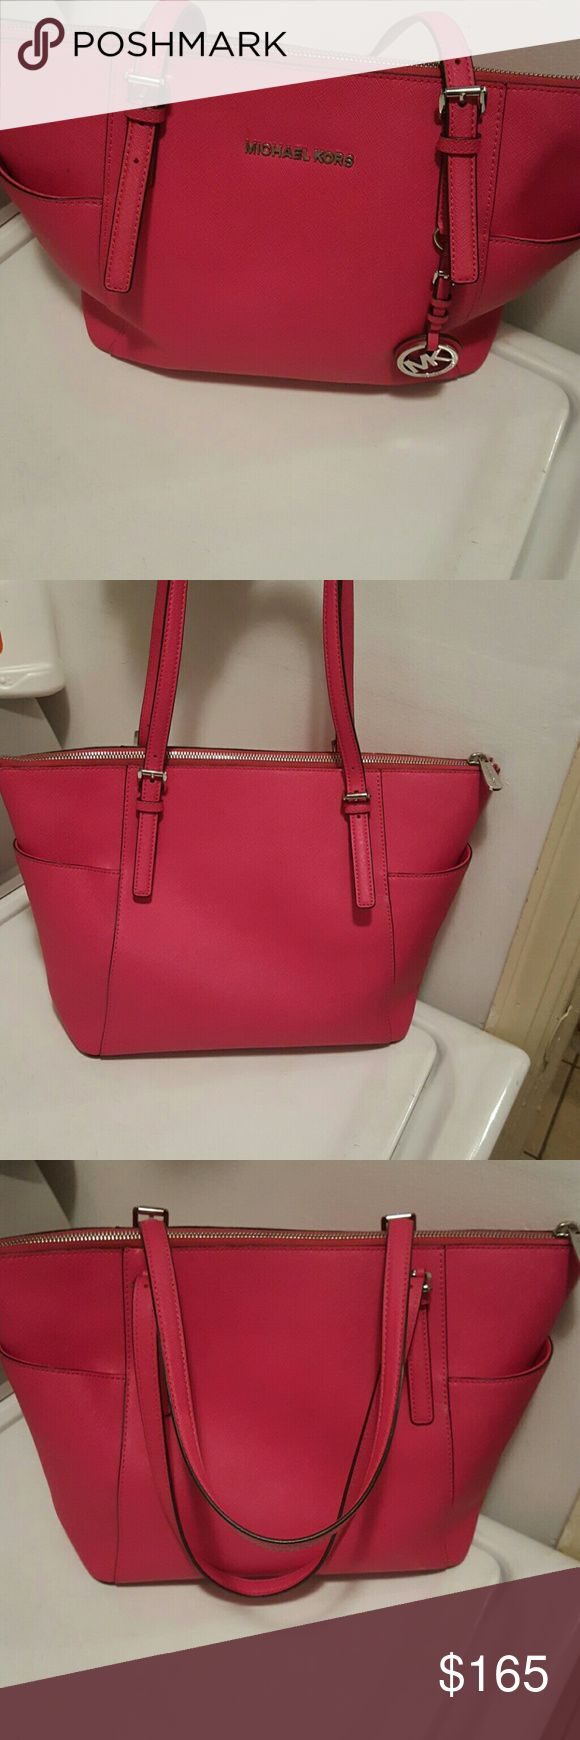 Michael Kors Authentic Pink Purse No Coupon accept Used condition.  Outside is almost like new.  Inside does have some stains but no tears.  NO COUPONS FROM PREVIOUS BUYERS ACCEPTED ON THIS ITEM, THANKS!! MAKE ME AN OFFER!! Michael Kors Bags